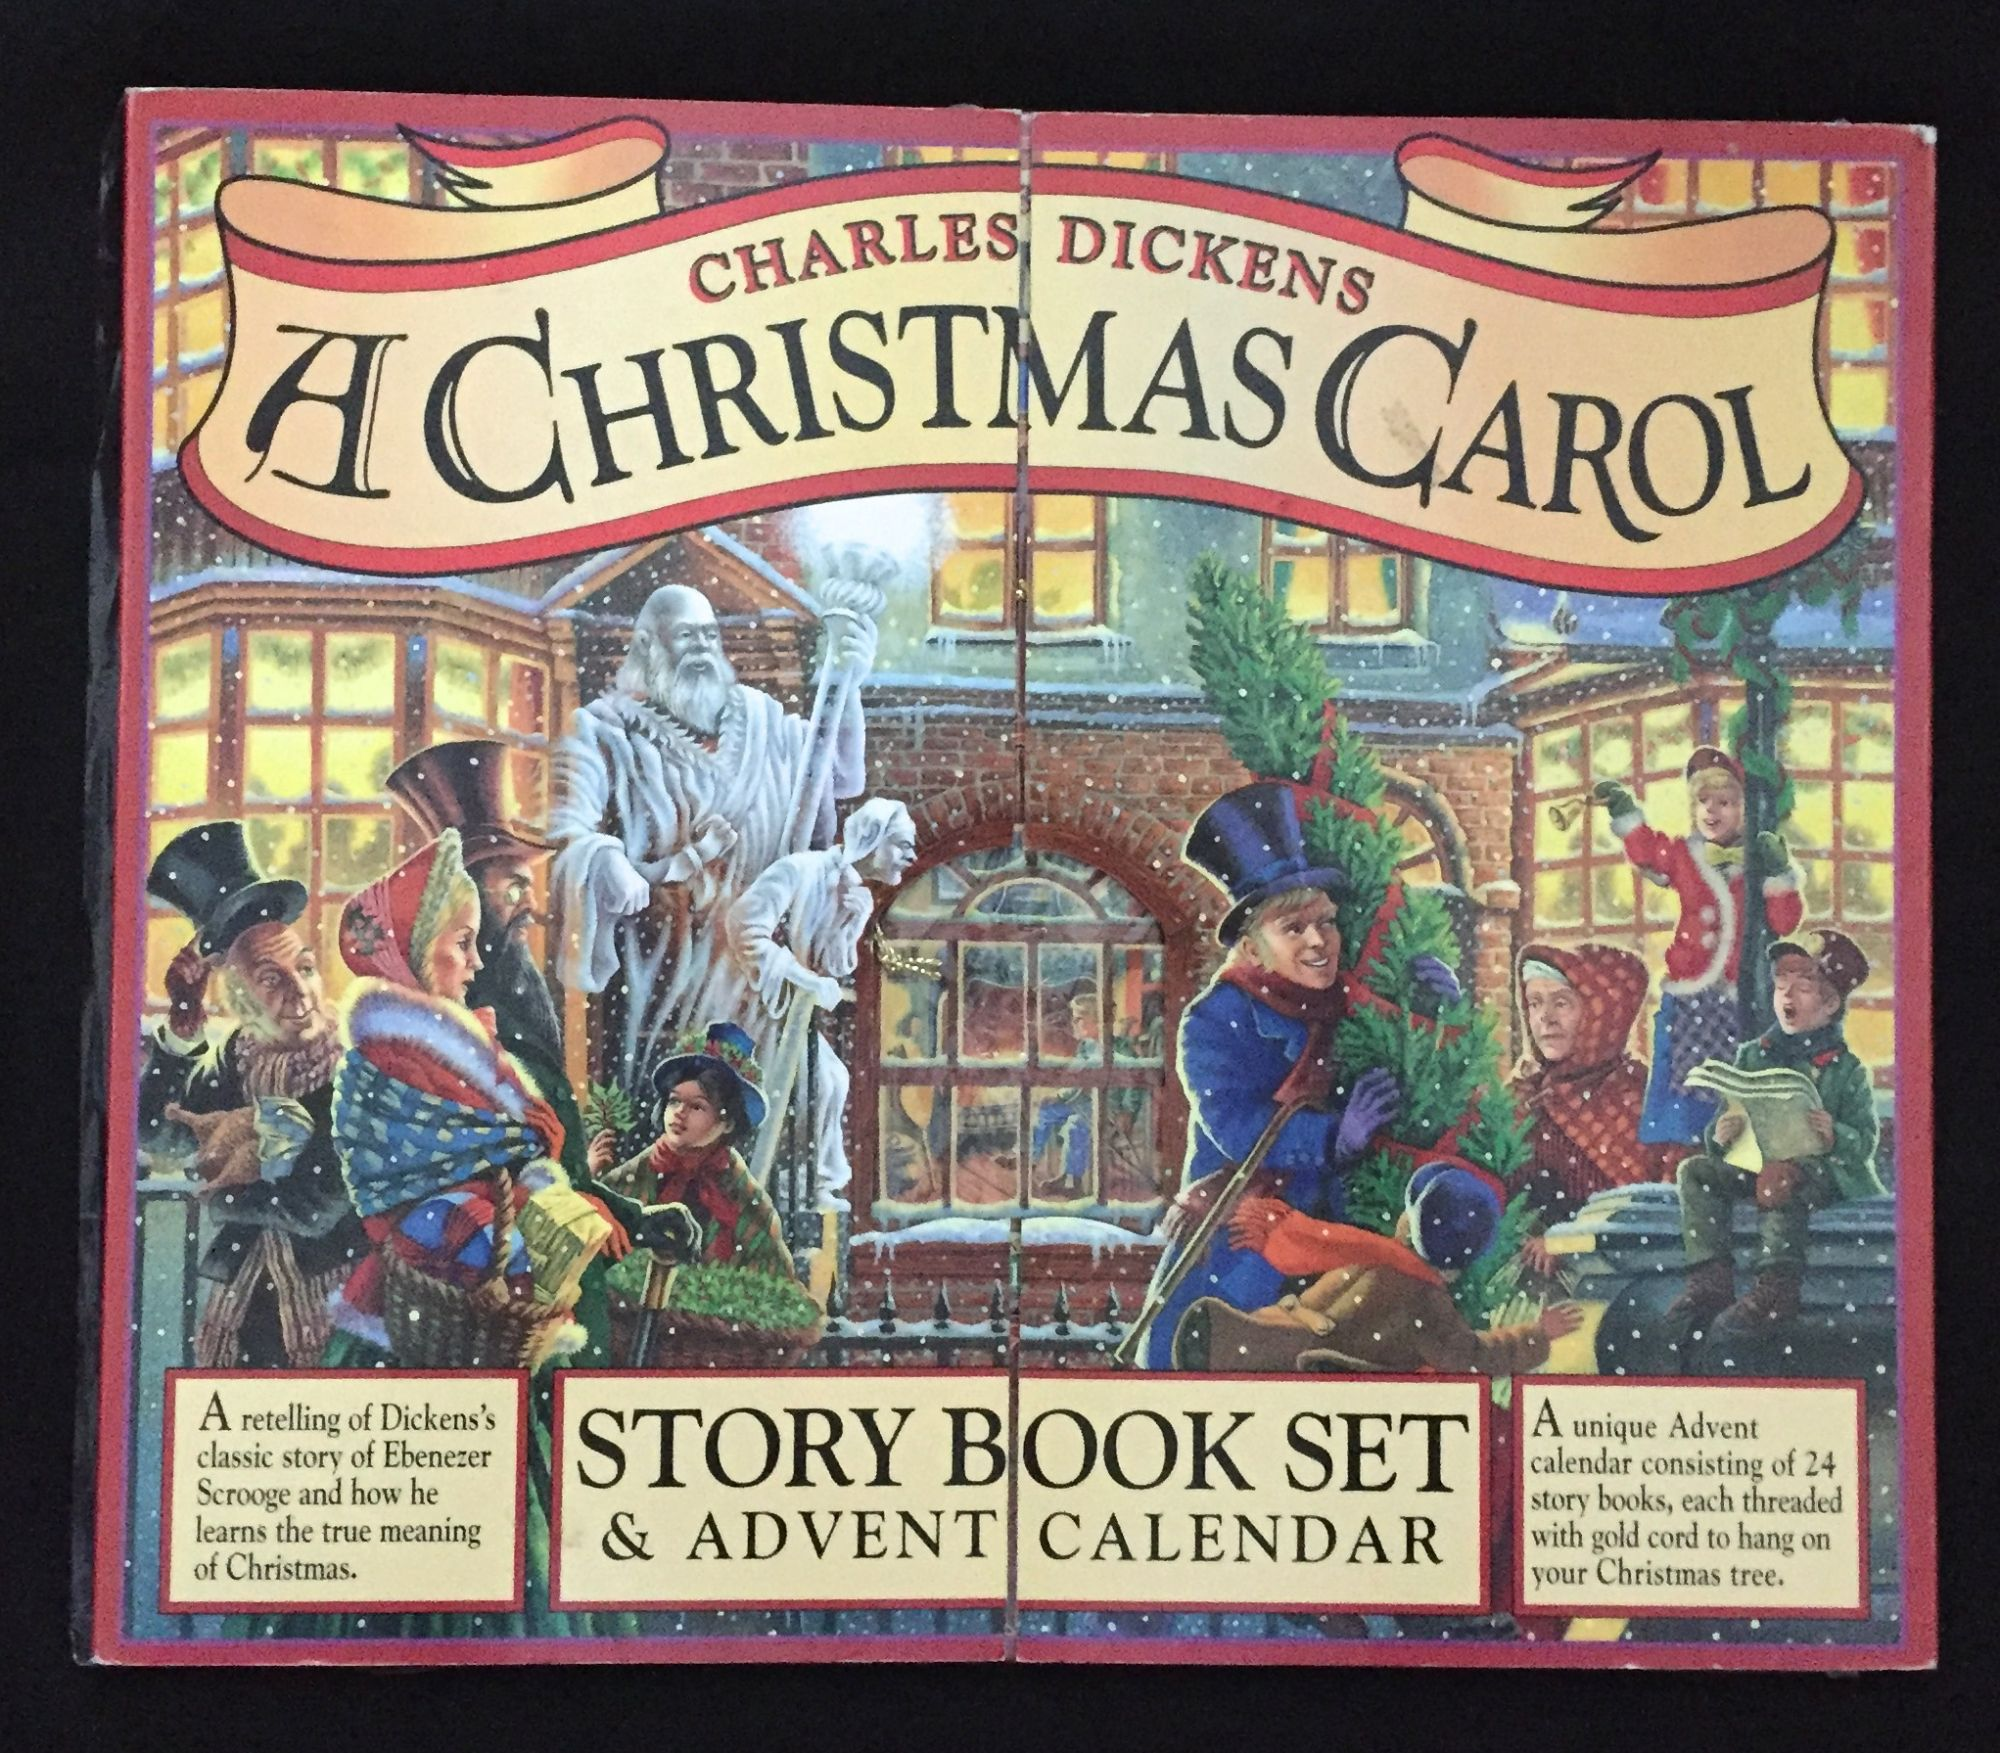 charles dickens a christmas carol story book set advent calendar retelling of dickenss classic story of ebenezer scrooge and how he learns the true - Classic Christmas Books